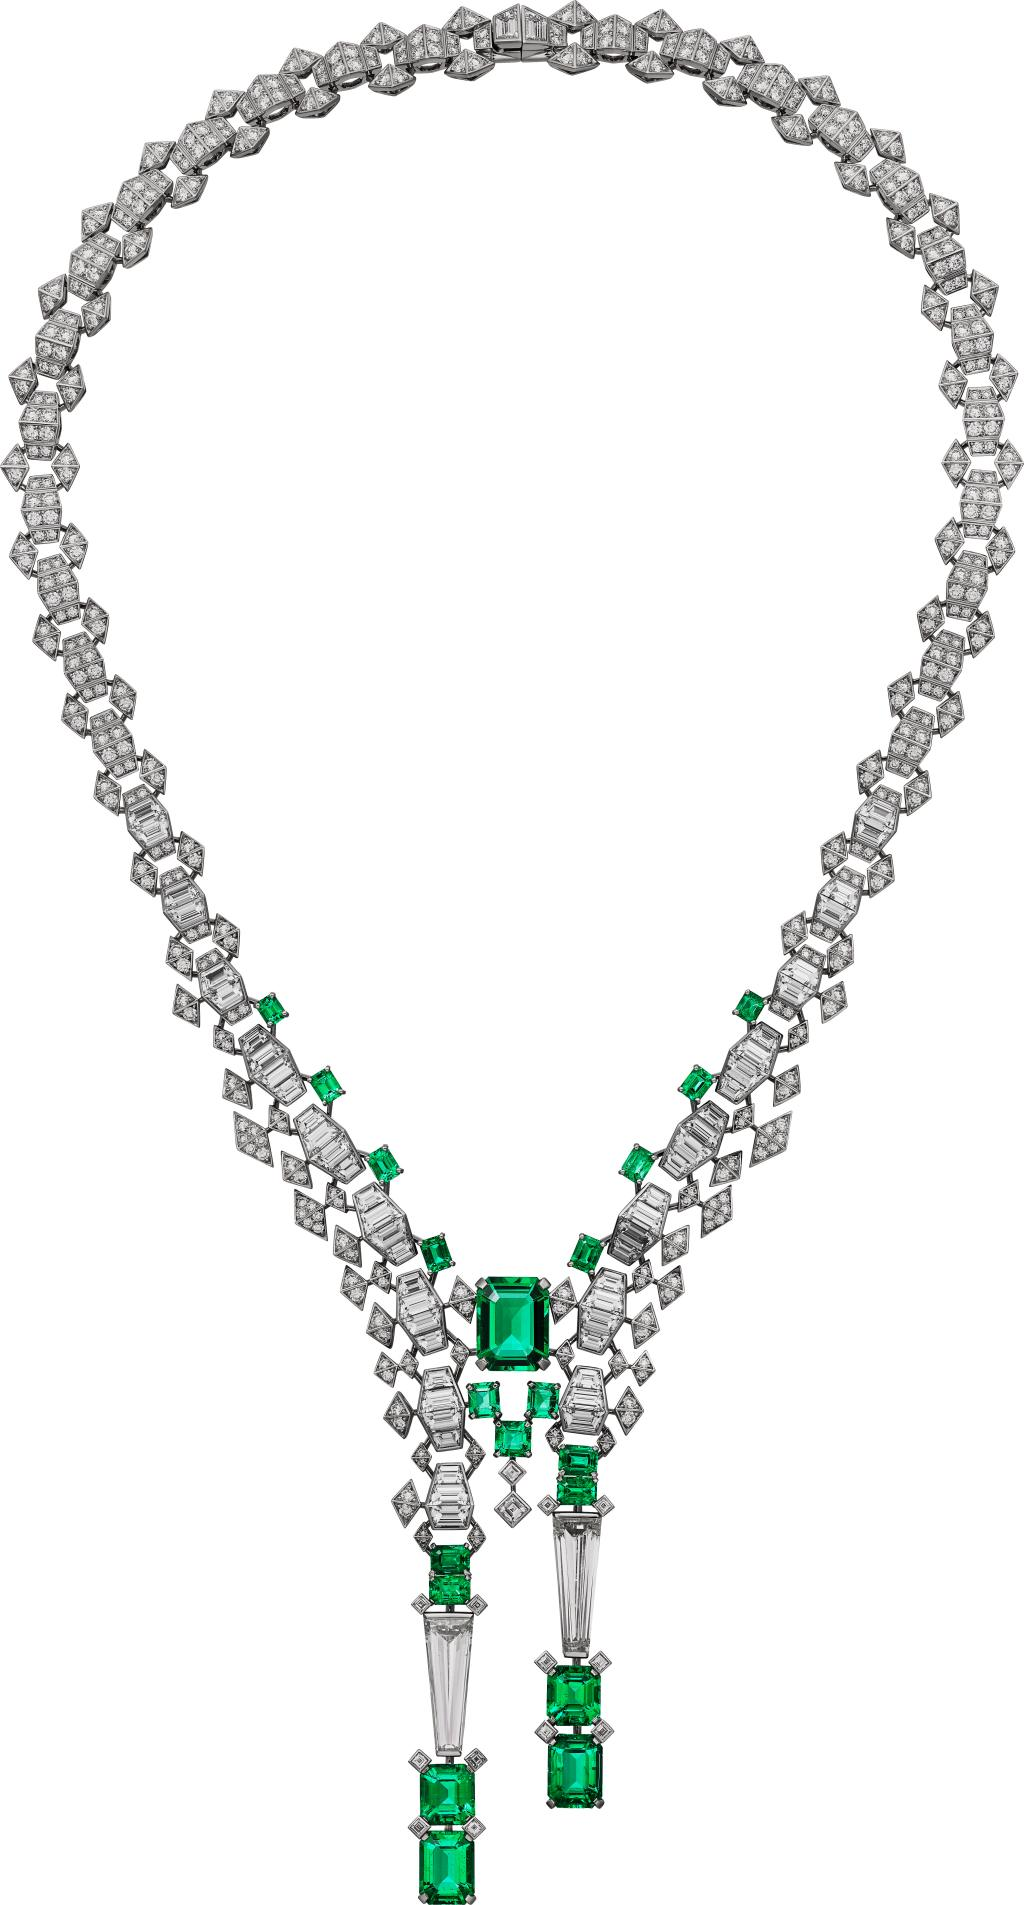 Cartier Gharial emerald and diamond necklace.